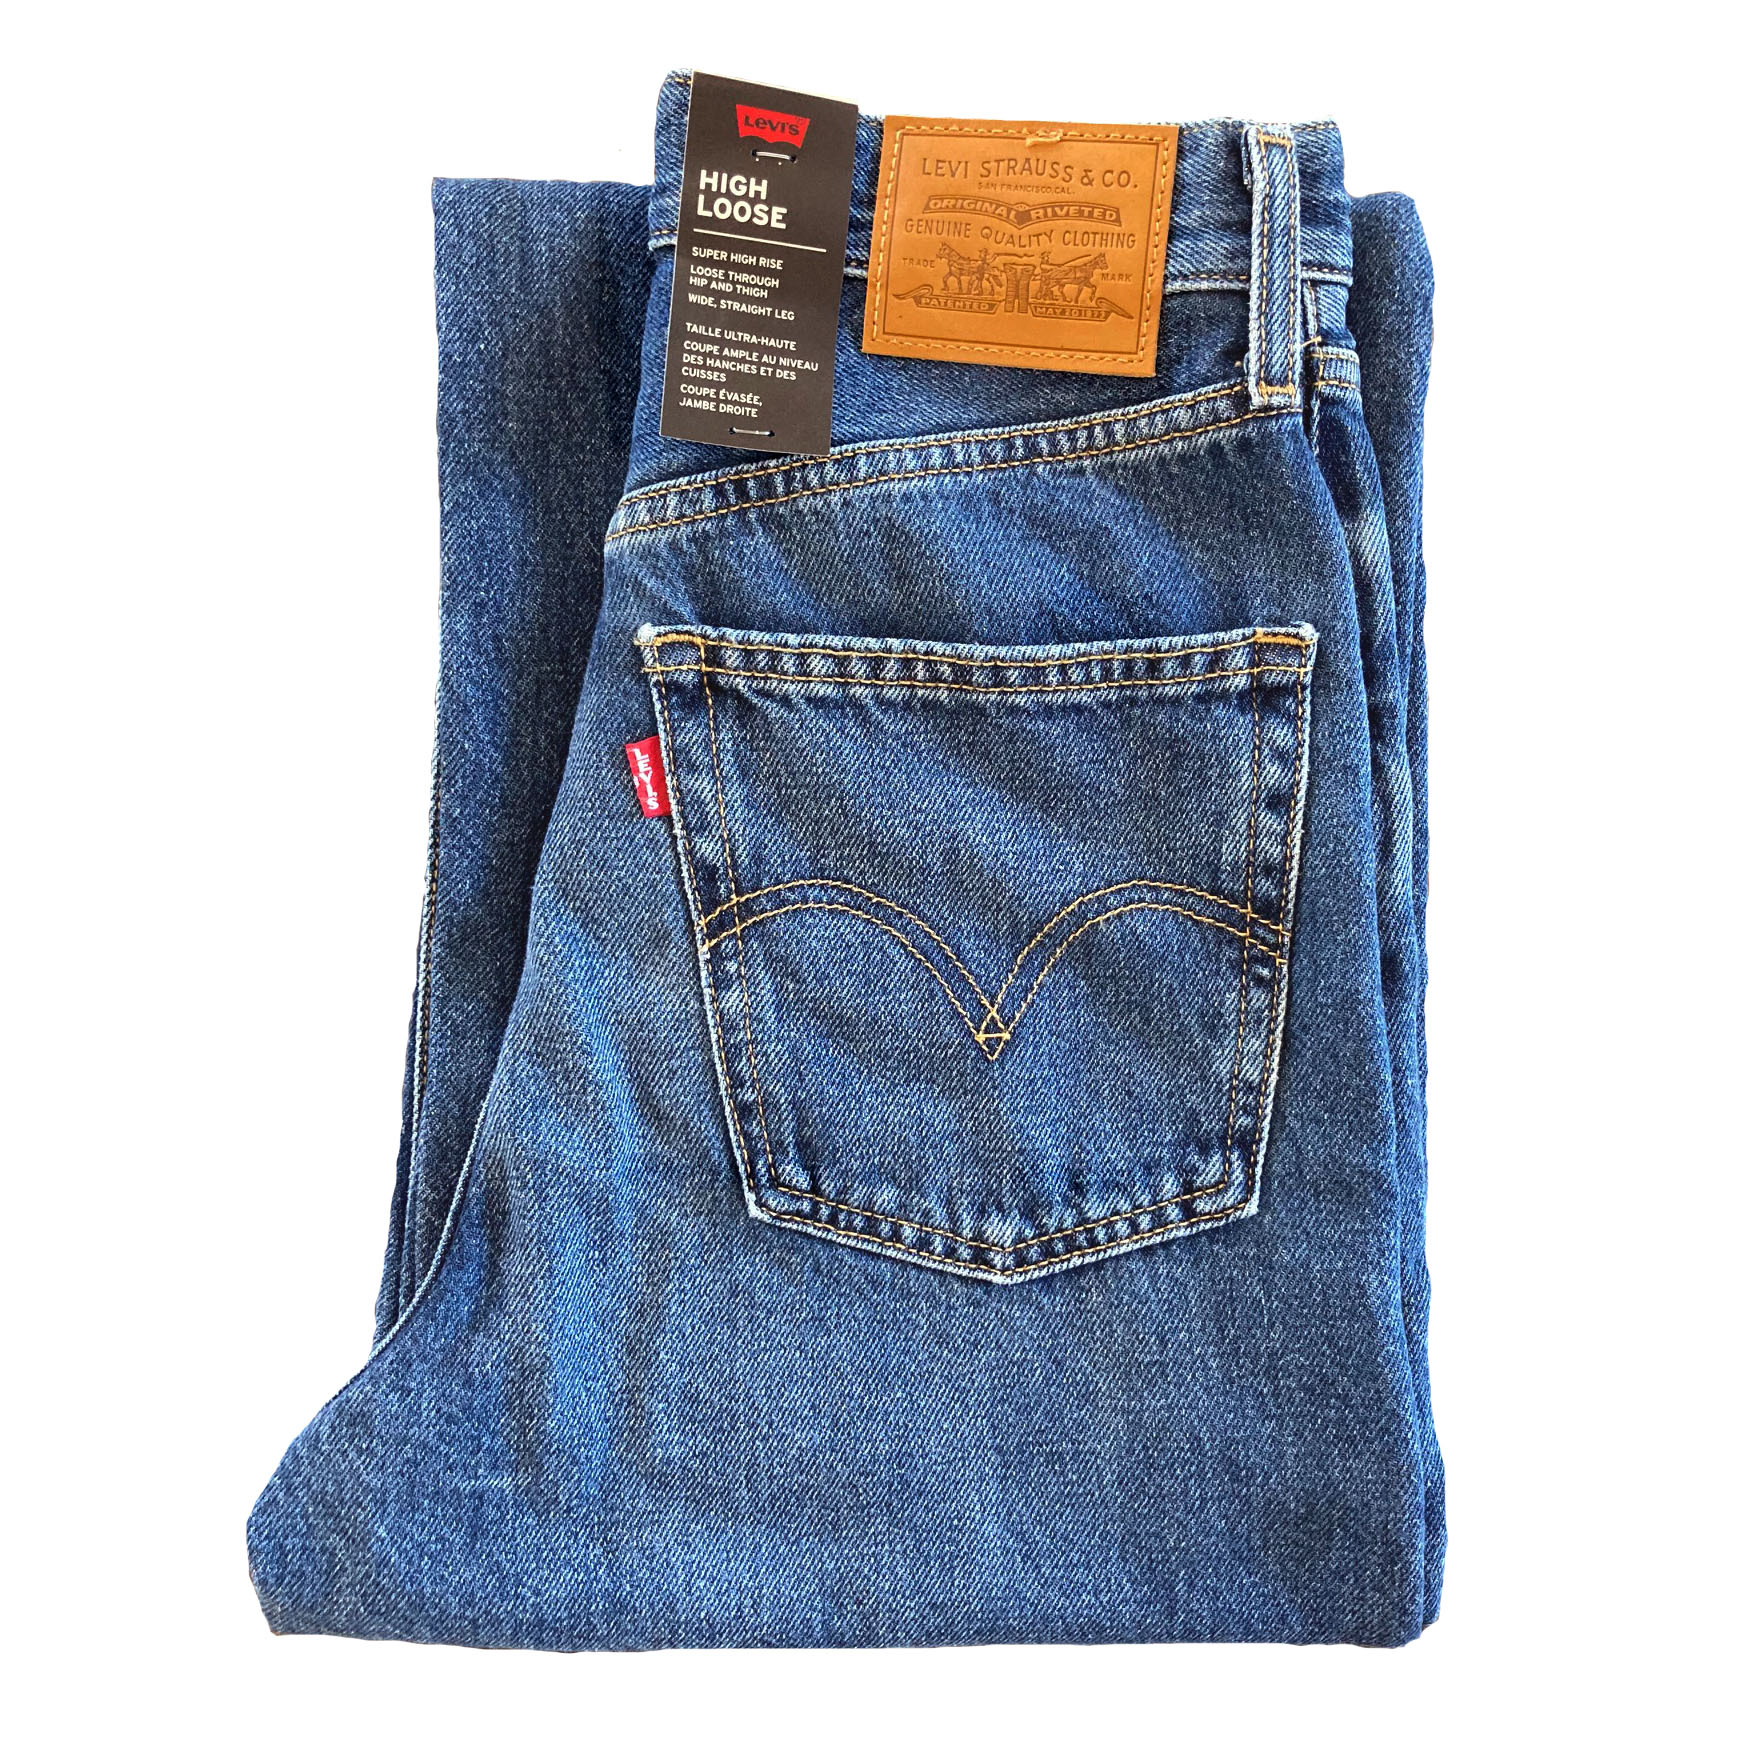 Levi's - HIGH LOOSE - Show Off